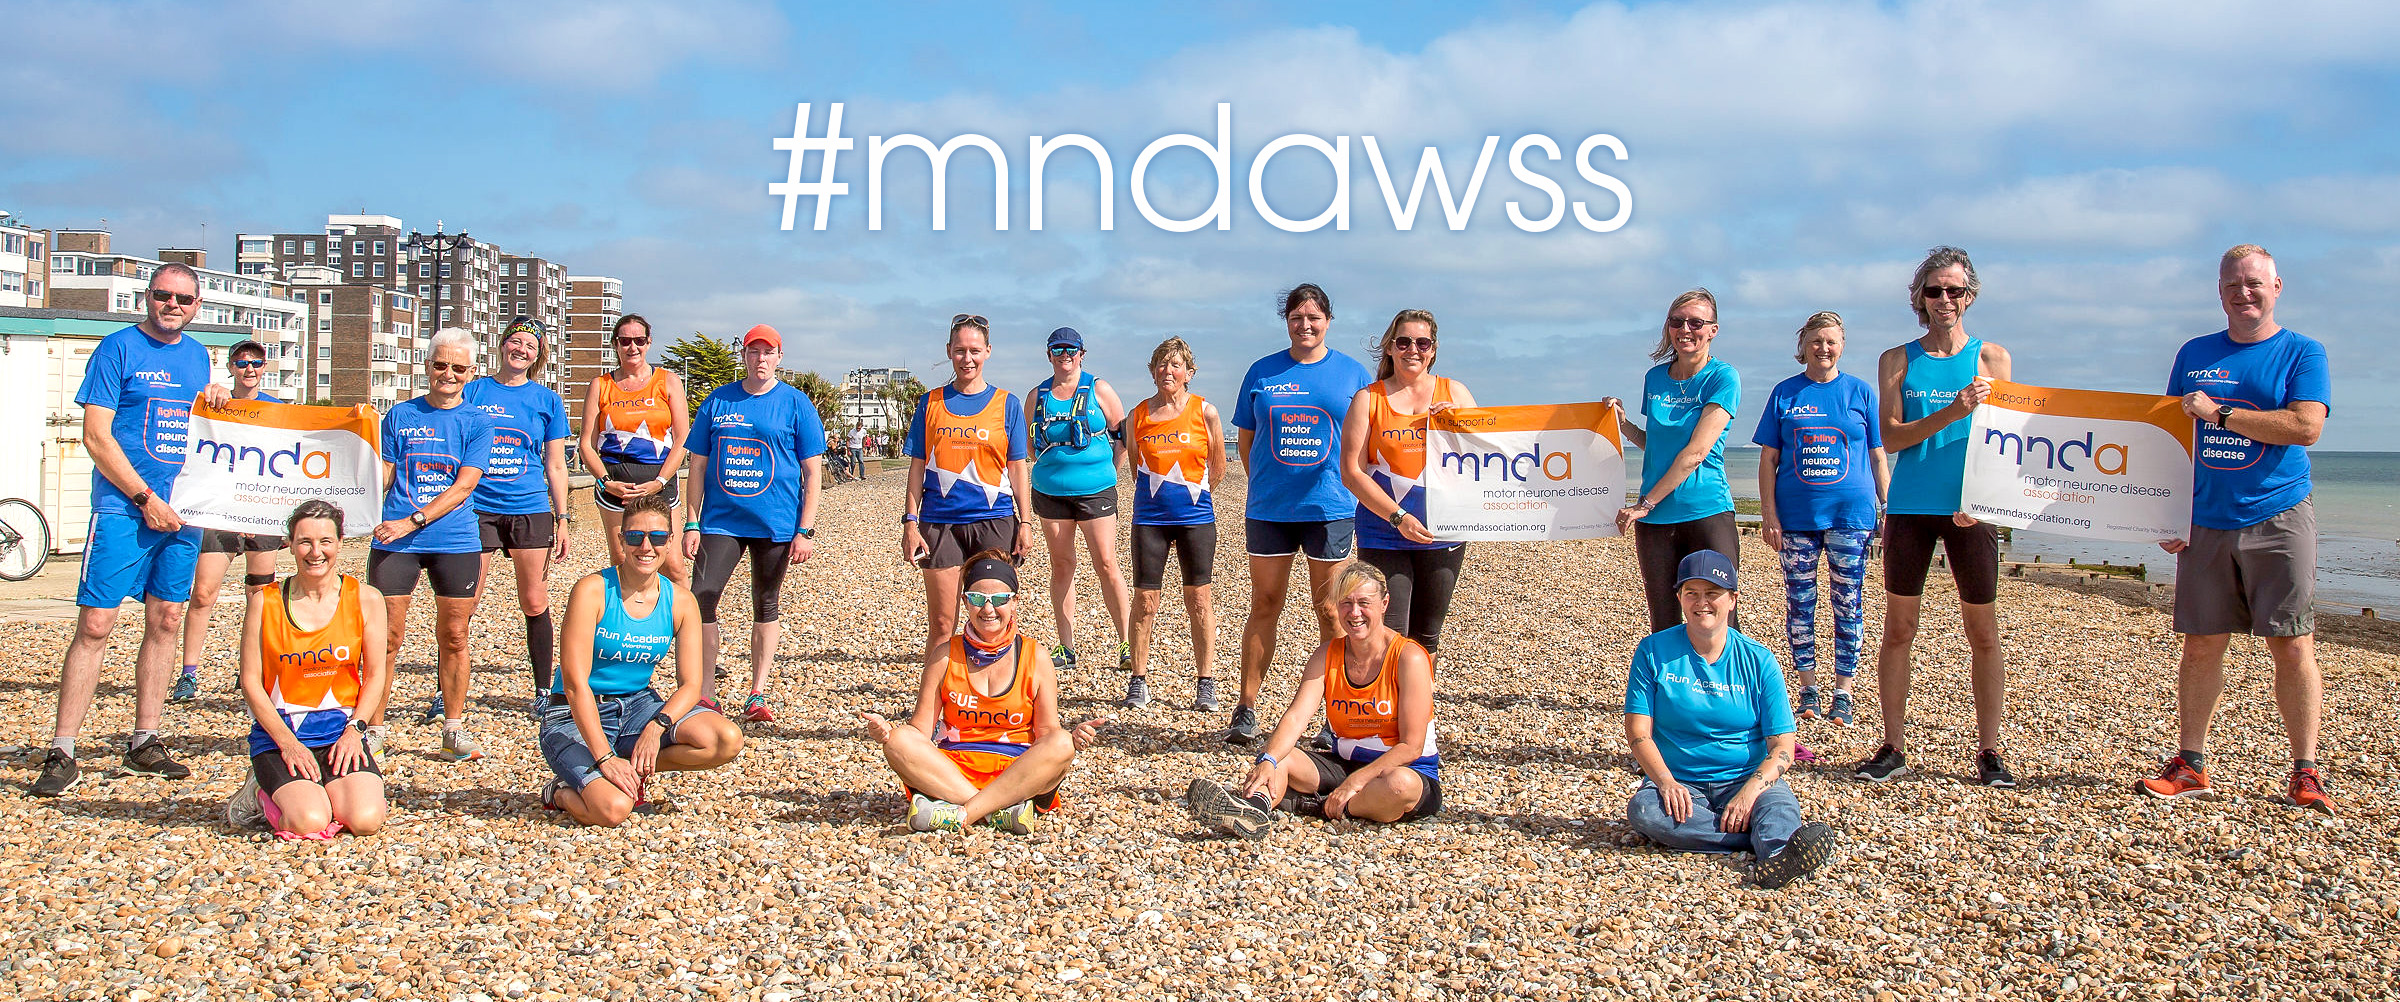 Our West Sussex members are active in the community for MND awareness